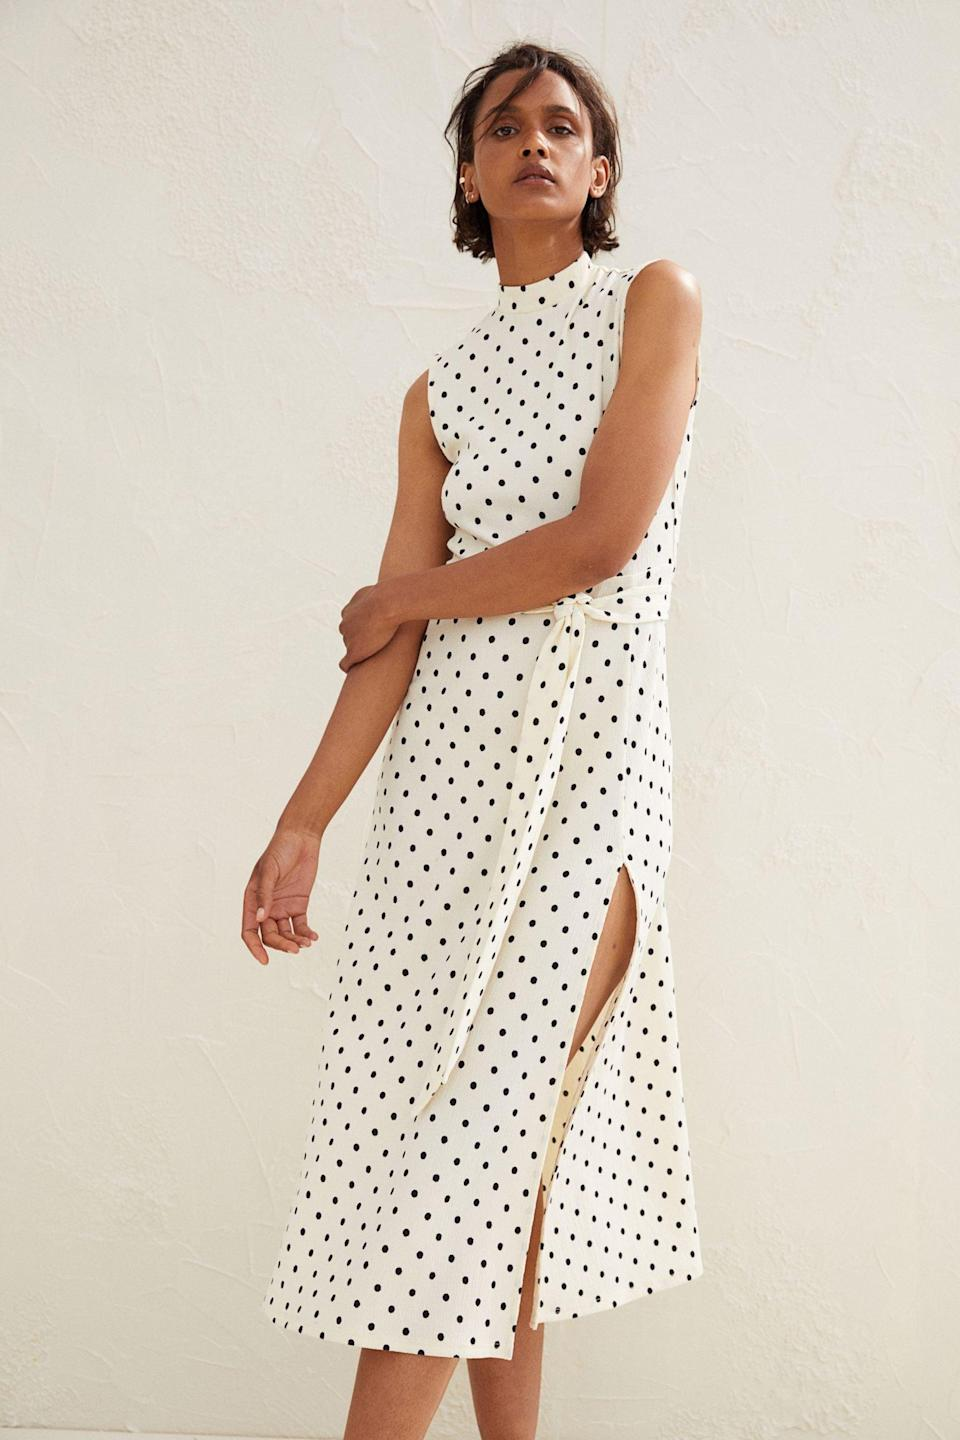 <p>For a polished yet relaxed look, this <span>Tie-belt Jersey Dress</span> ($36, originally $40) will impress your coworkers when you return to the office. The slit detail adds an unexpected yet tasteful element.</p>